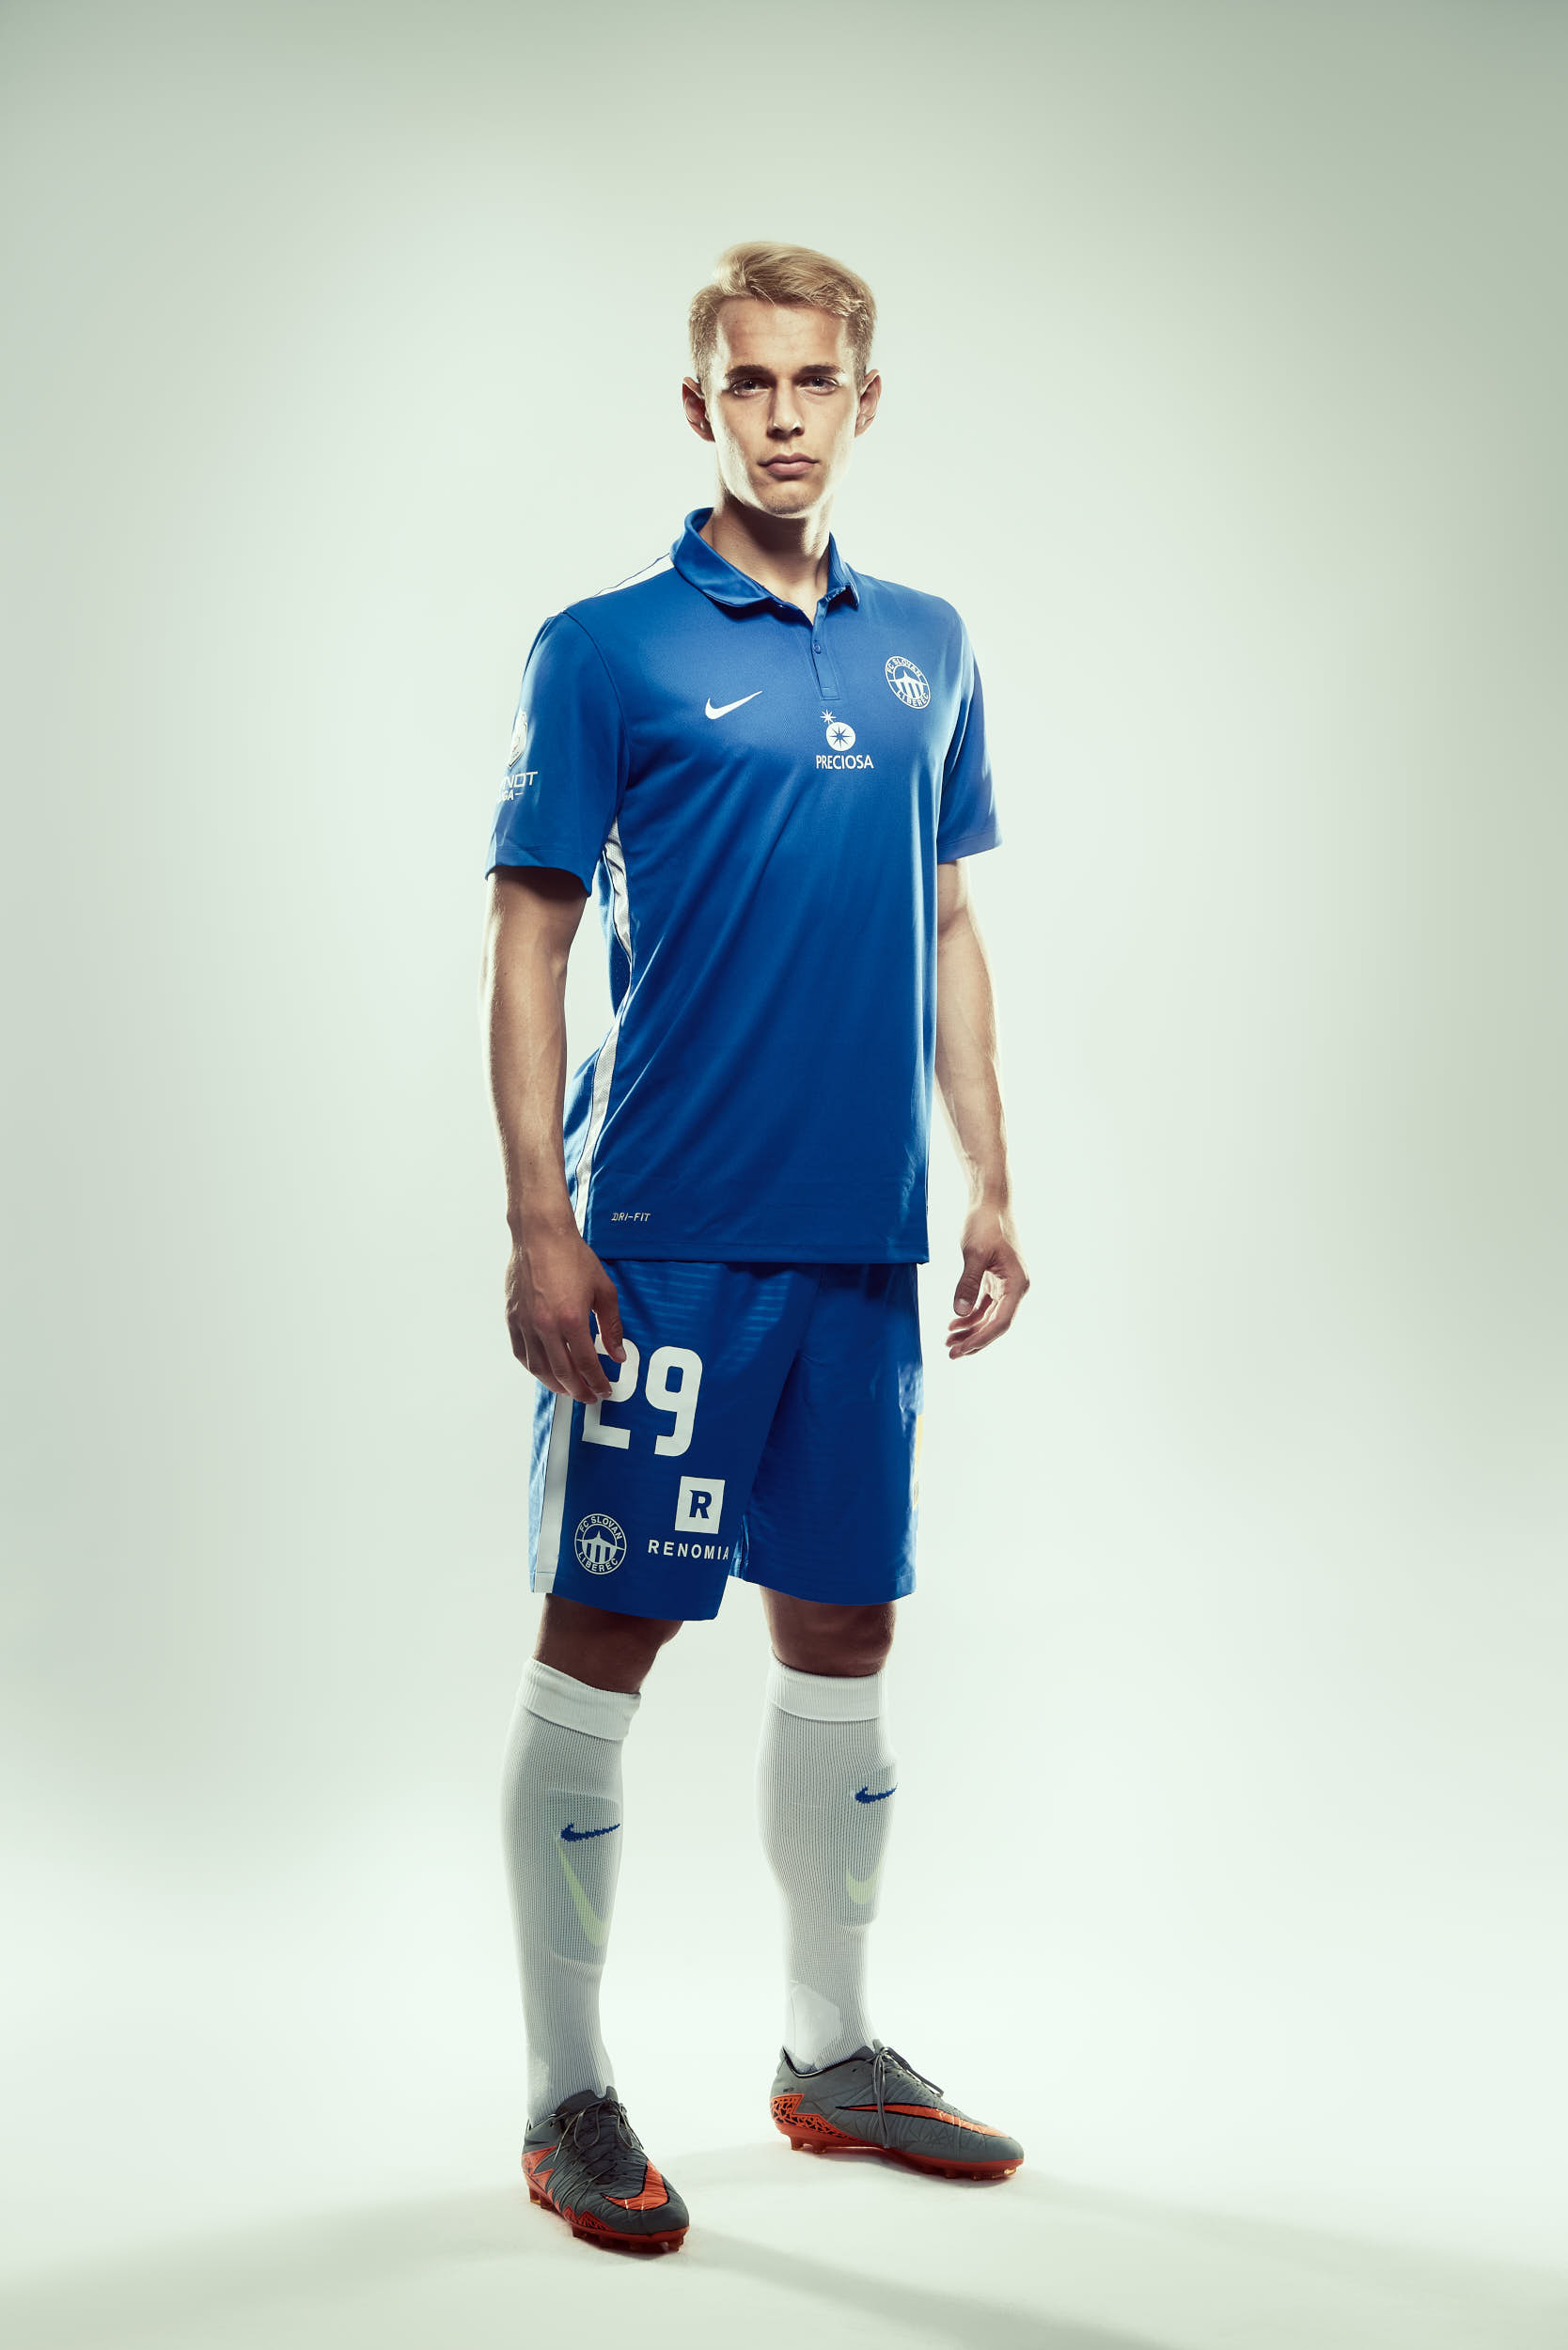 Sports apparel advertising photography: football player posing in a match kit on white background.